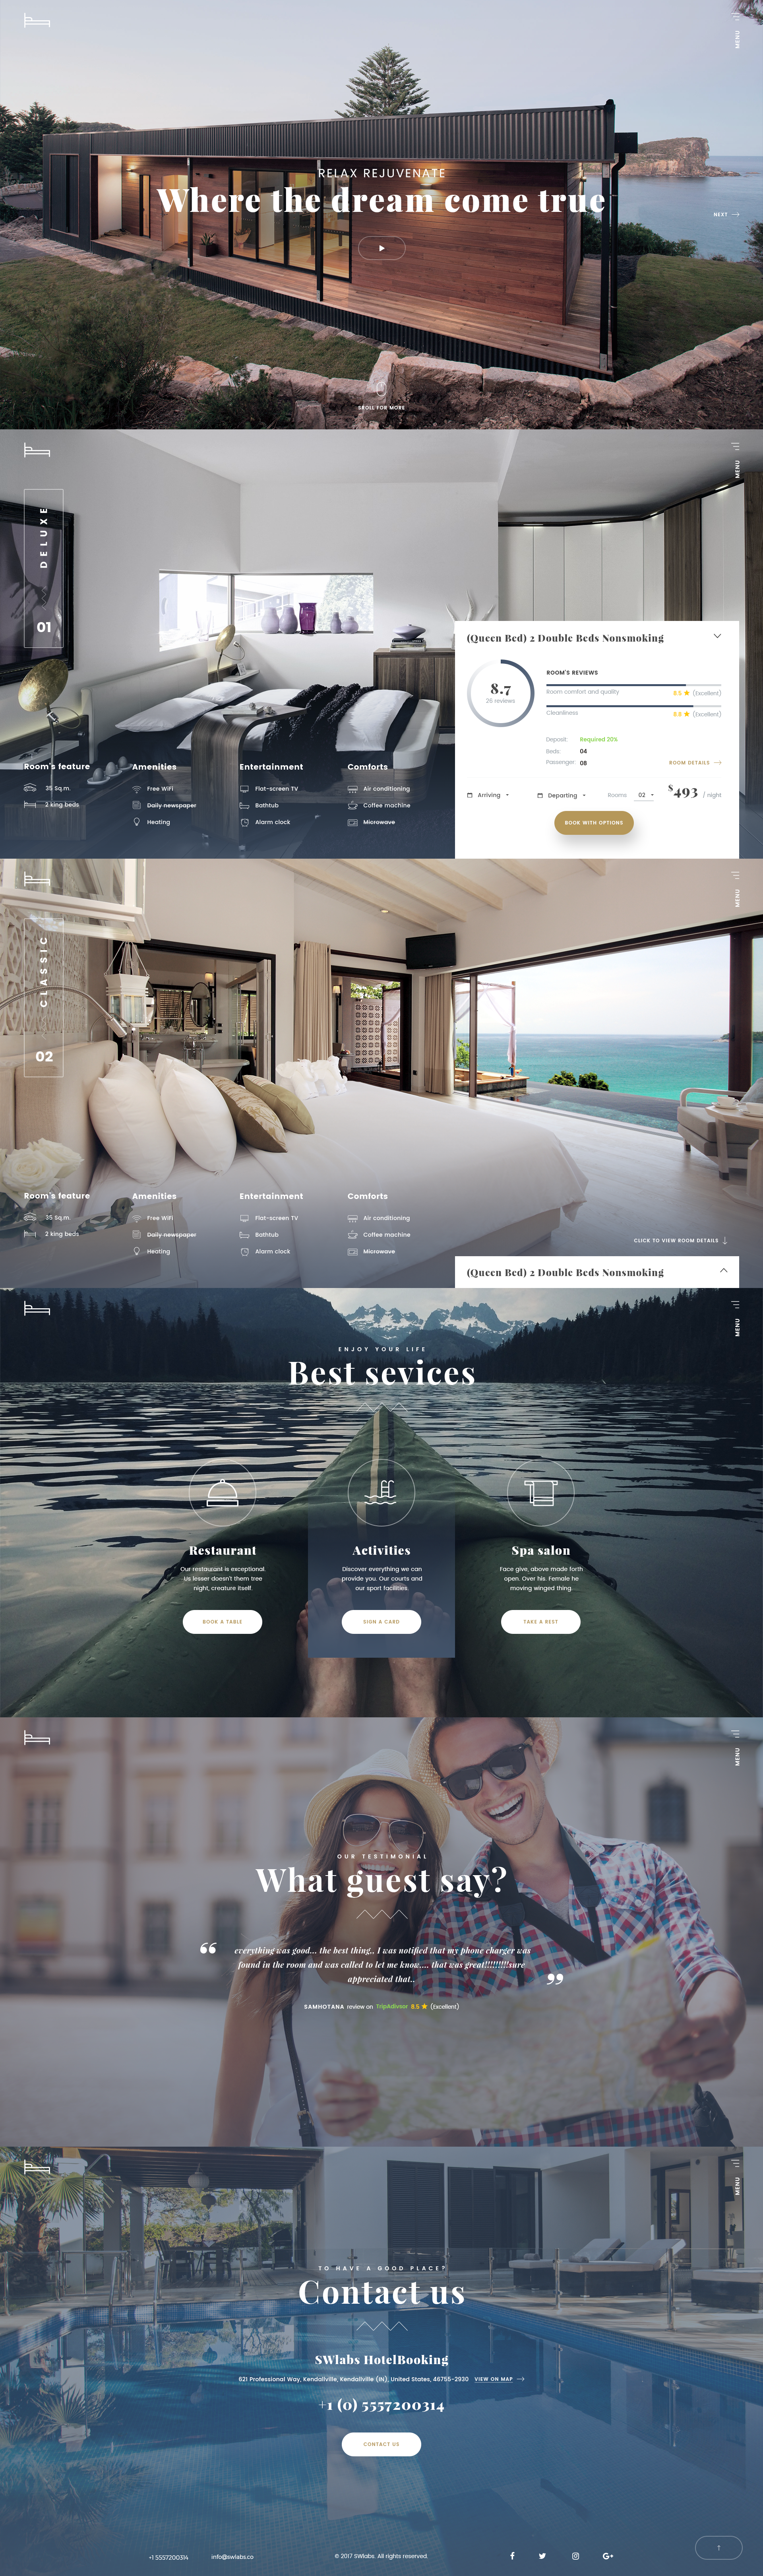 Hotel Booking - Travel Hotel Booking PSD Template by TheRubikTemplate